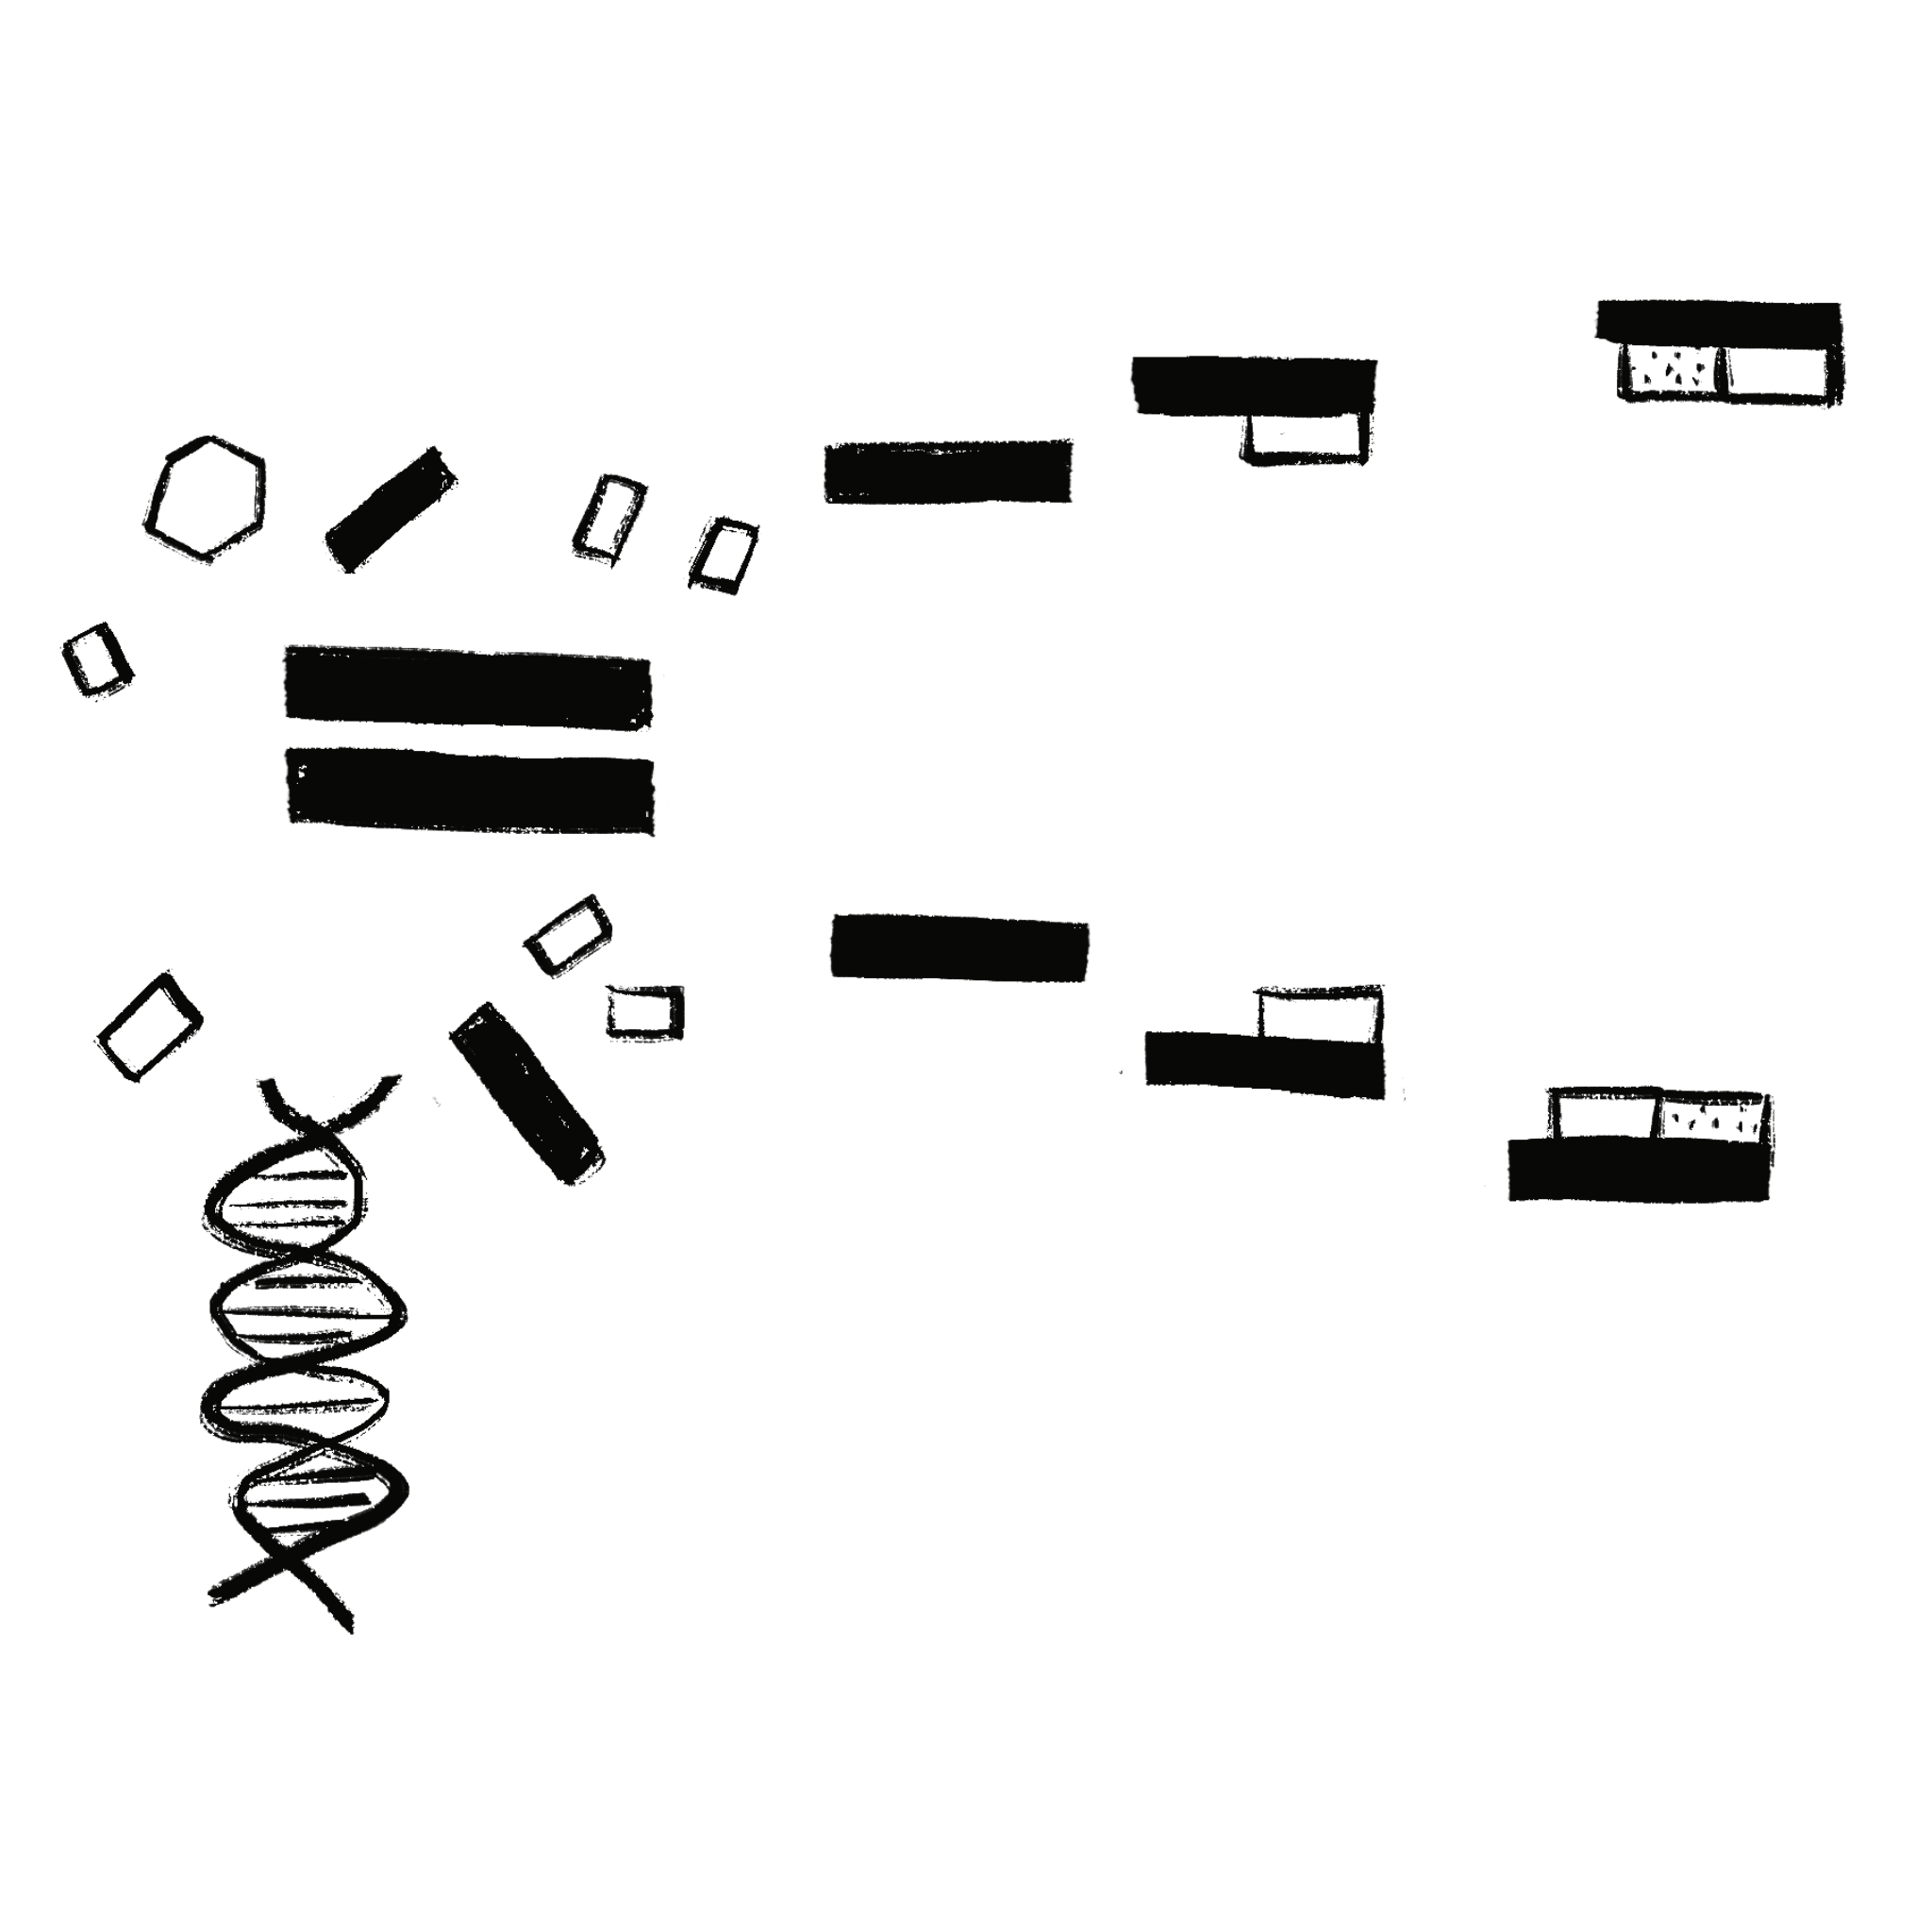 DNA Polymerase: What Is It and What Does It Do?